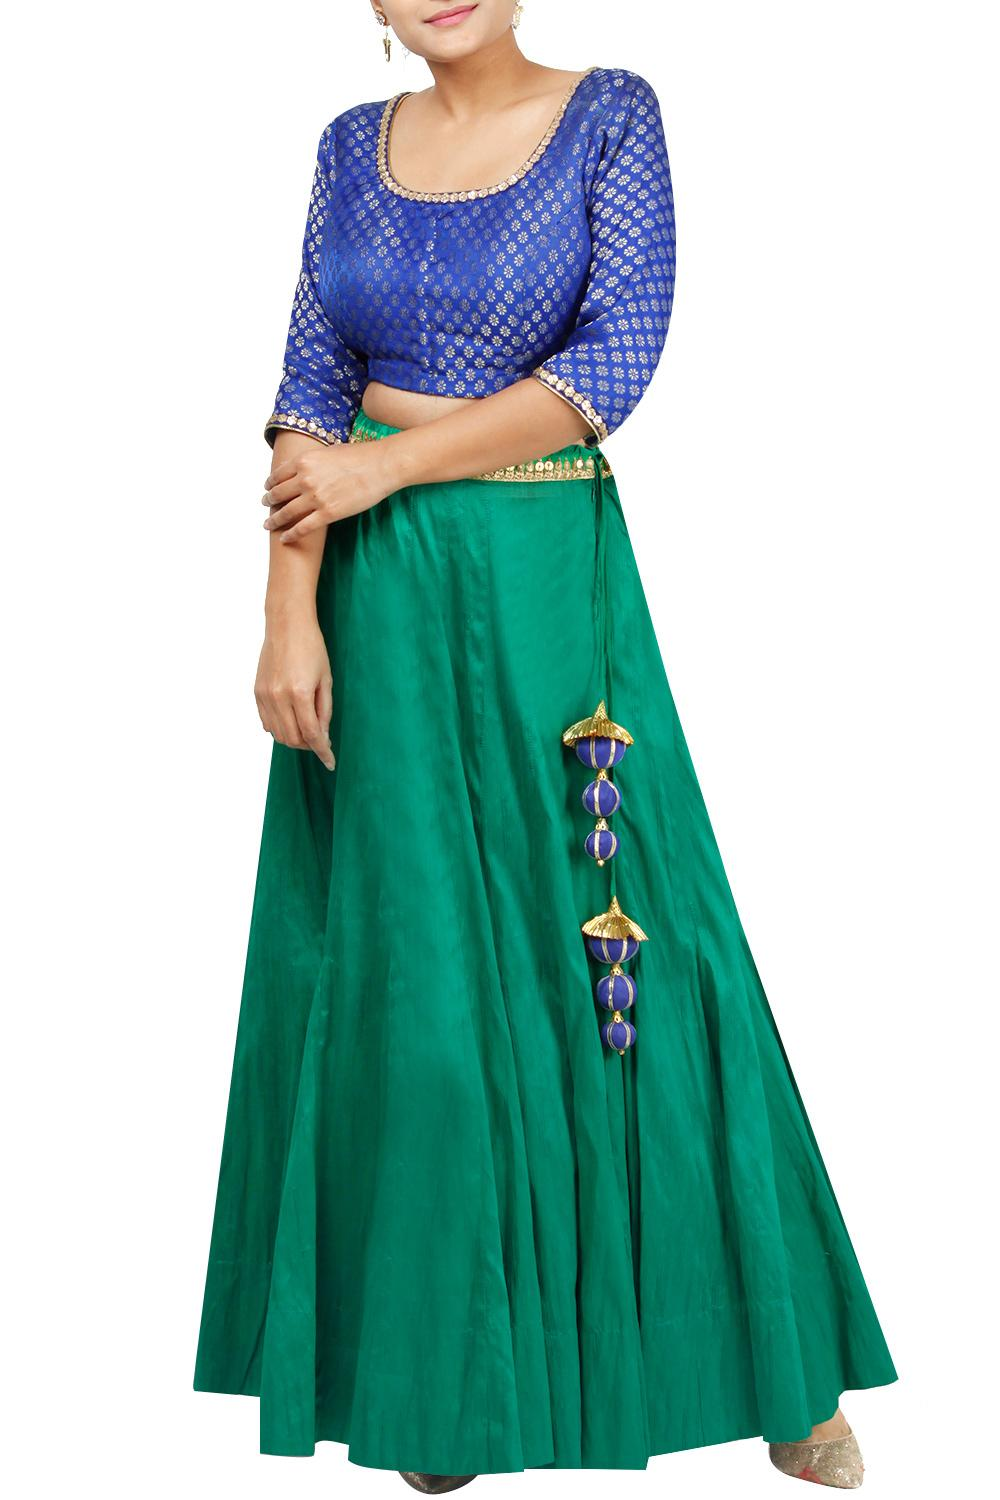 Lehengas Clothing Carma Emerald Green And Blue Lehenga Crop Top